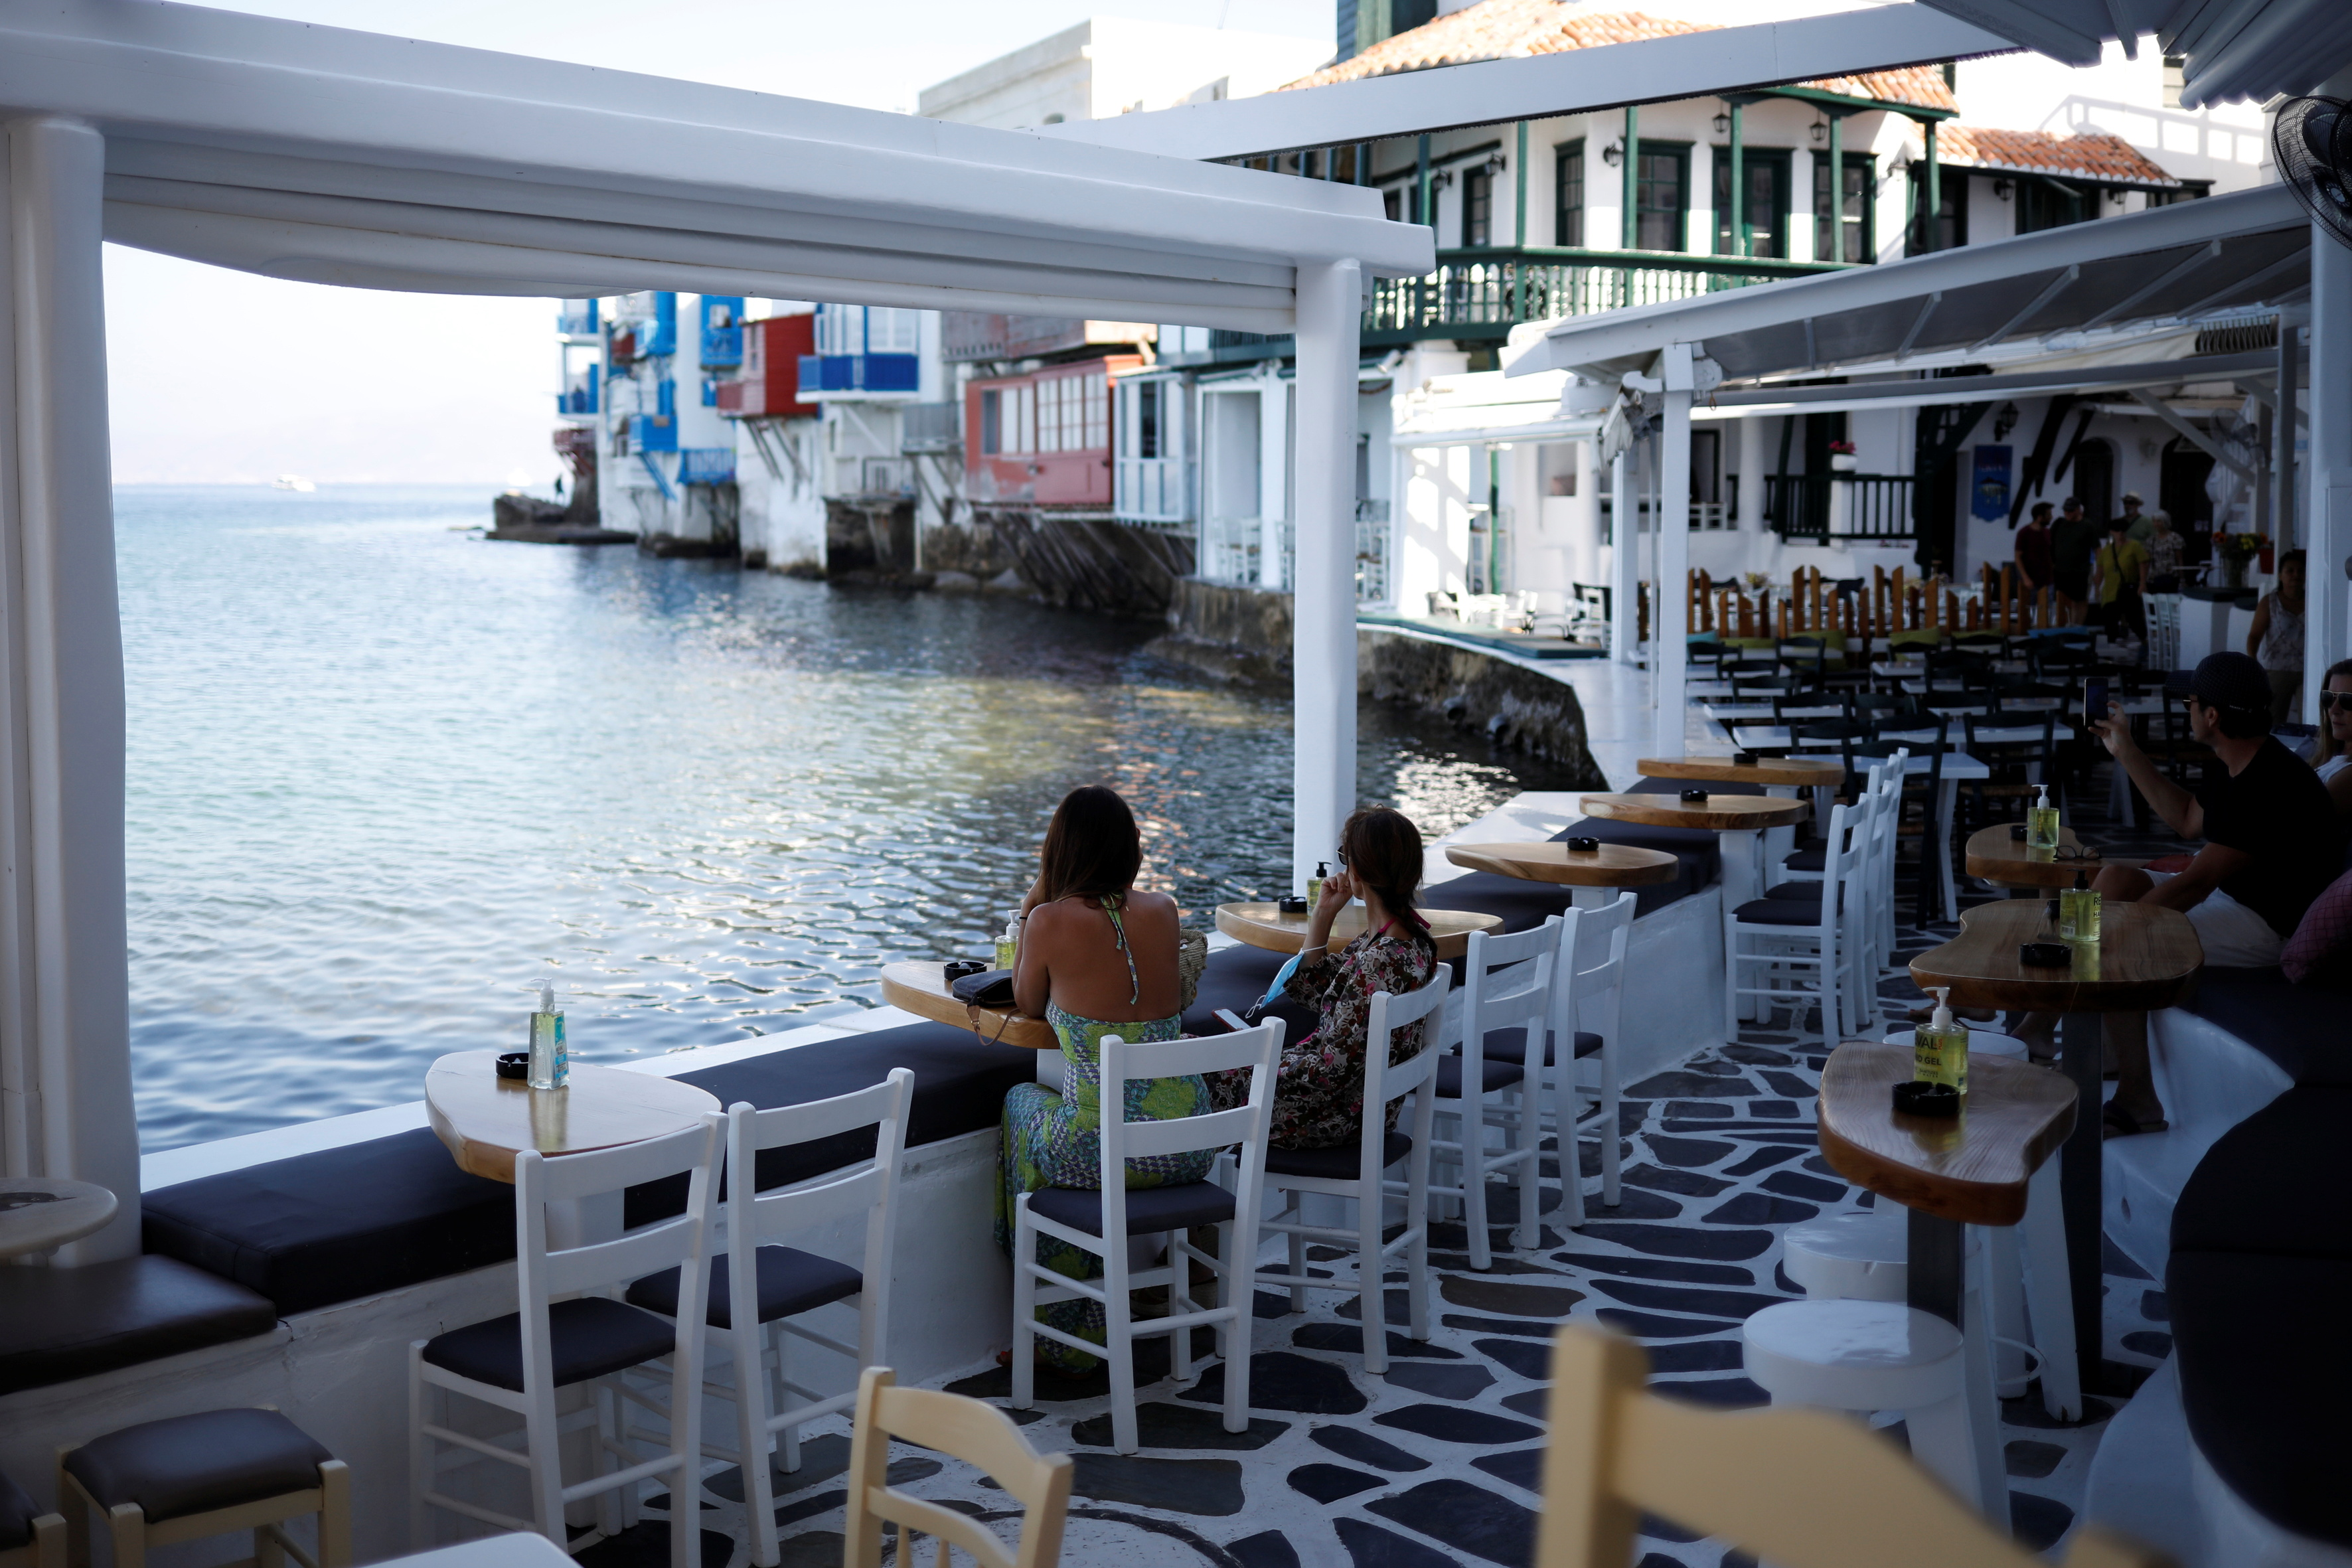 People enjoy the view in a cafe in Little Venice as Greece banned music in restaurants and bars and imposed a nighttime curfew on the island of Mykonos, Greece, July 18, 2021. REUTERS/Louiza Vradi